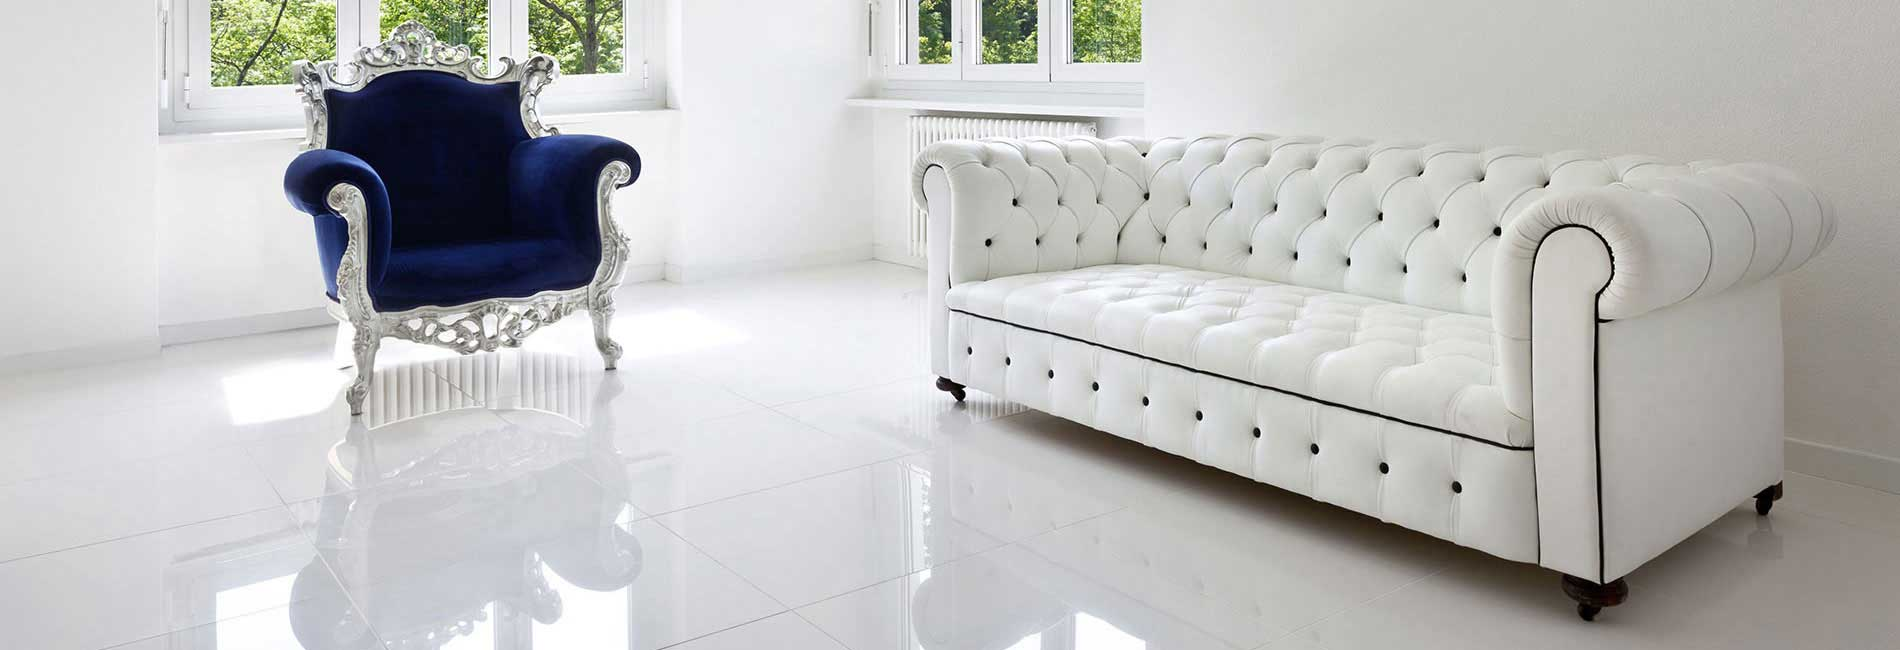 Living Room with White Ceramic and Vitrified Polished Floor Tiles